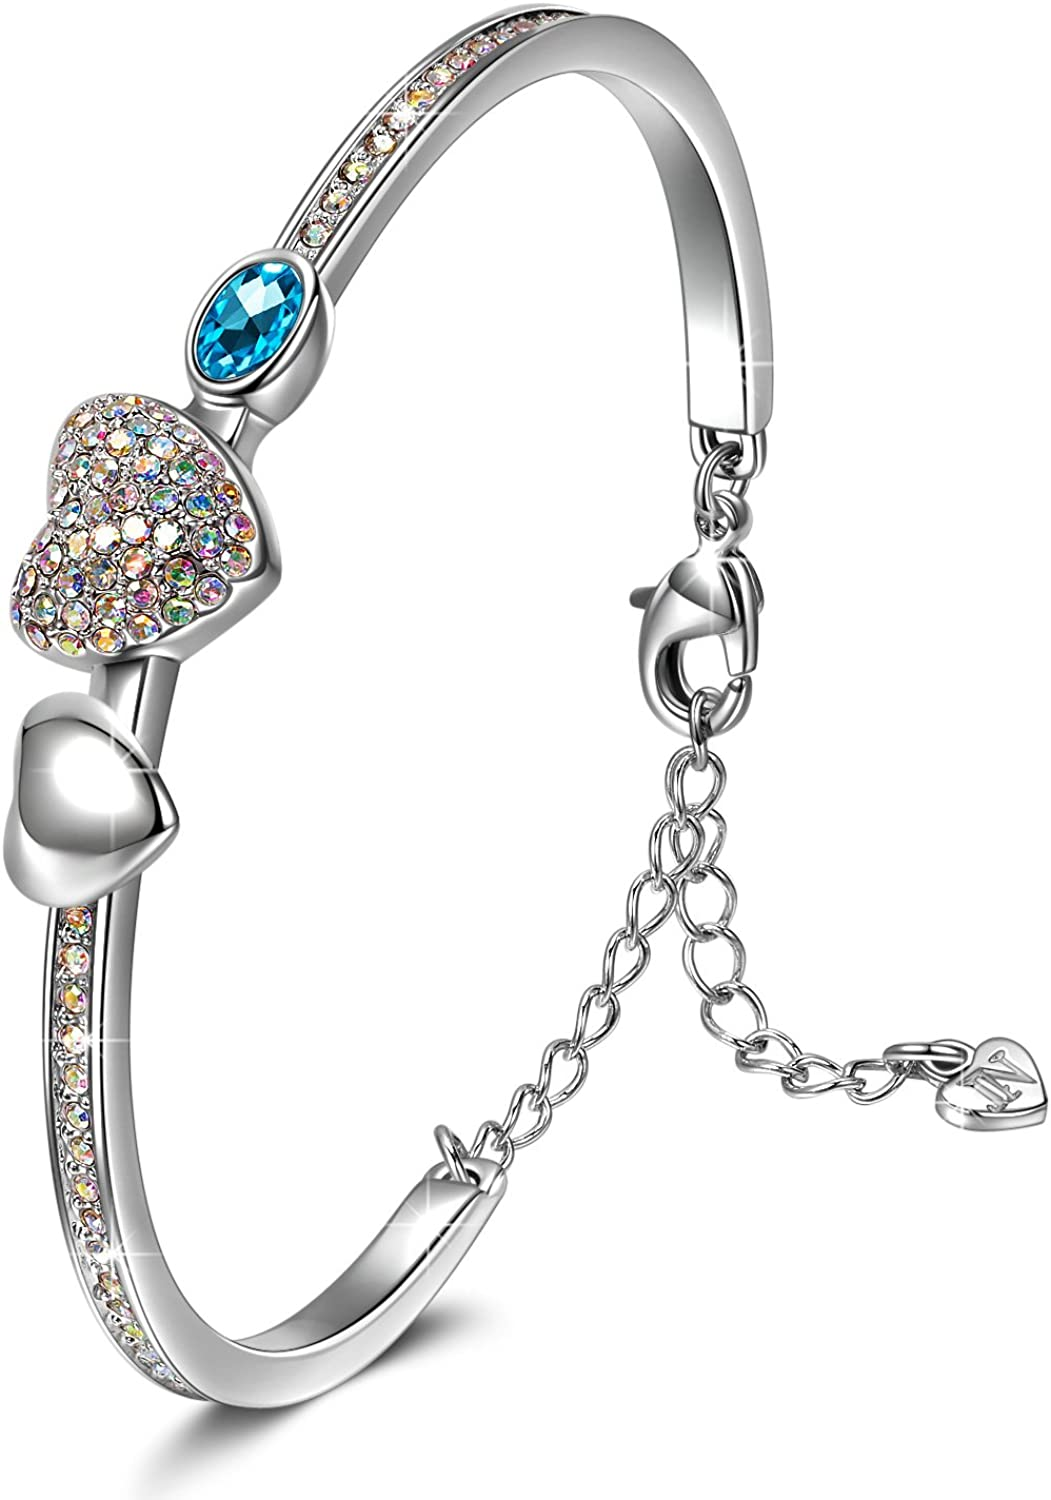 J.NINA Charming Bracelet for Women Four-leaf Heart OFFicial mail order Double Spring new work one after another Round